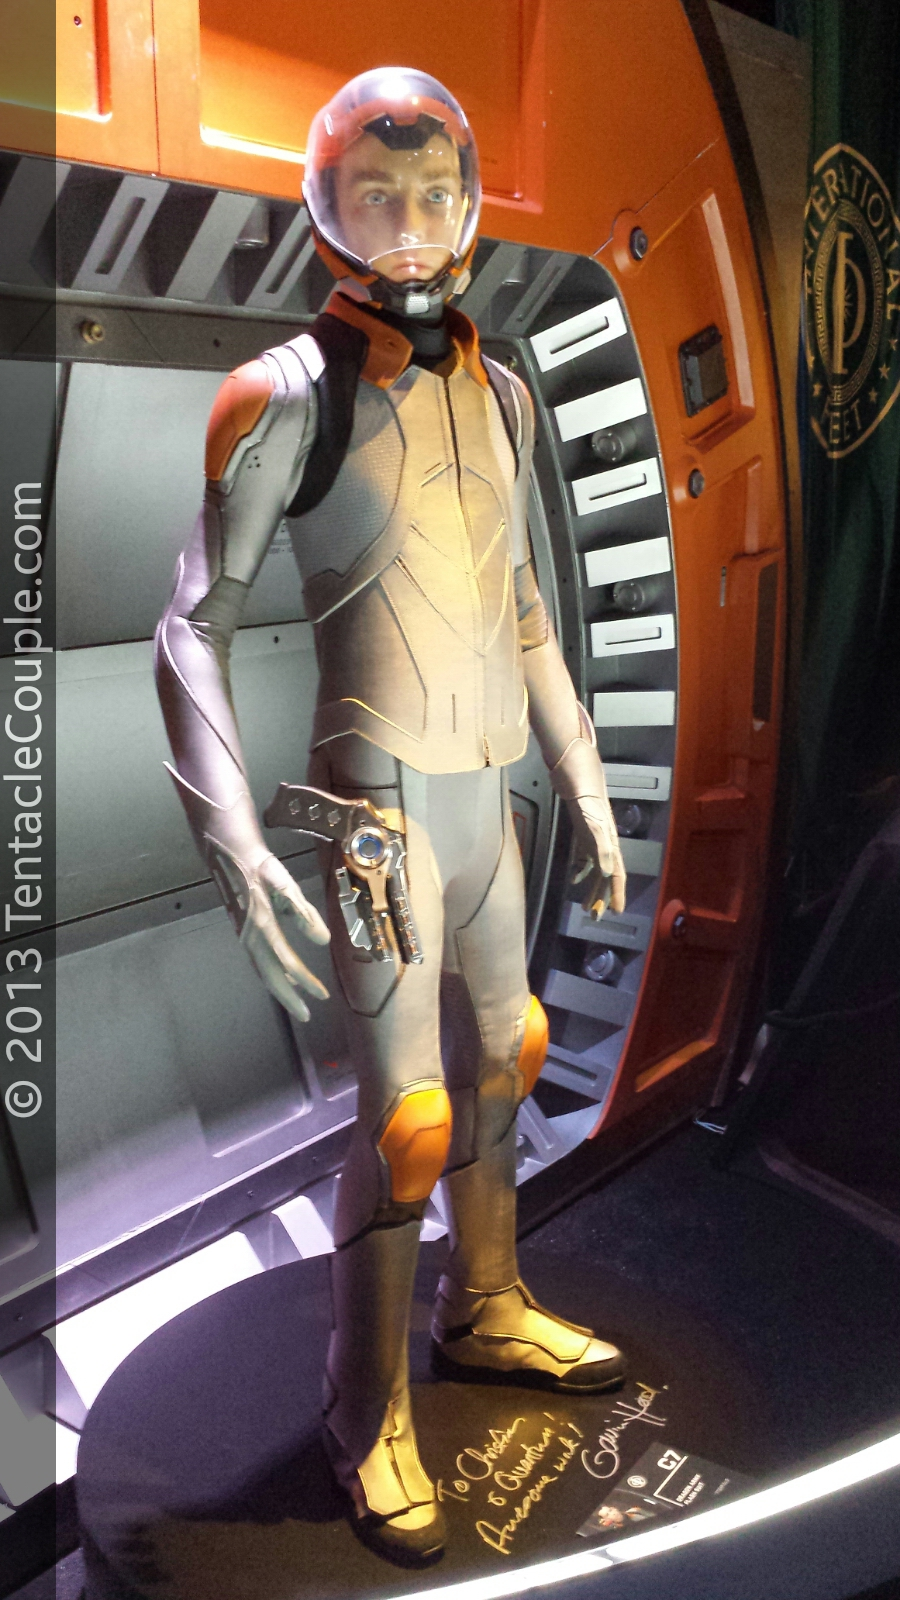 San Diego Comic-Con 2013 - Ender's Game